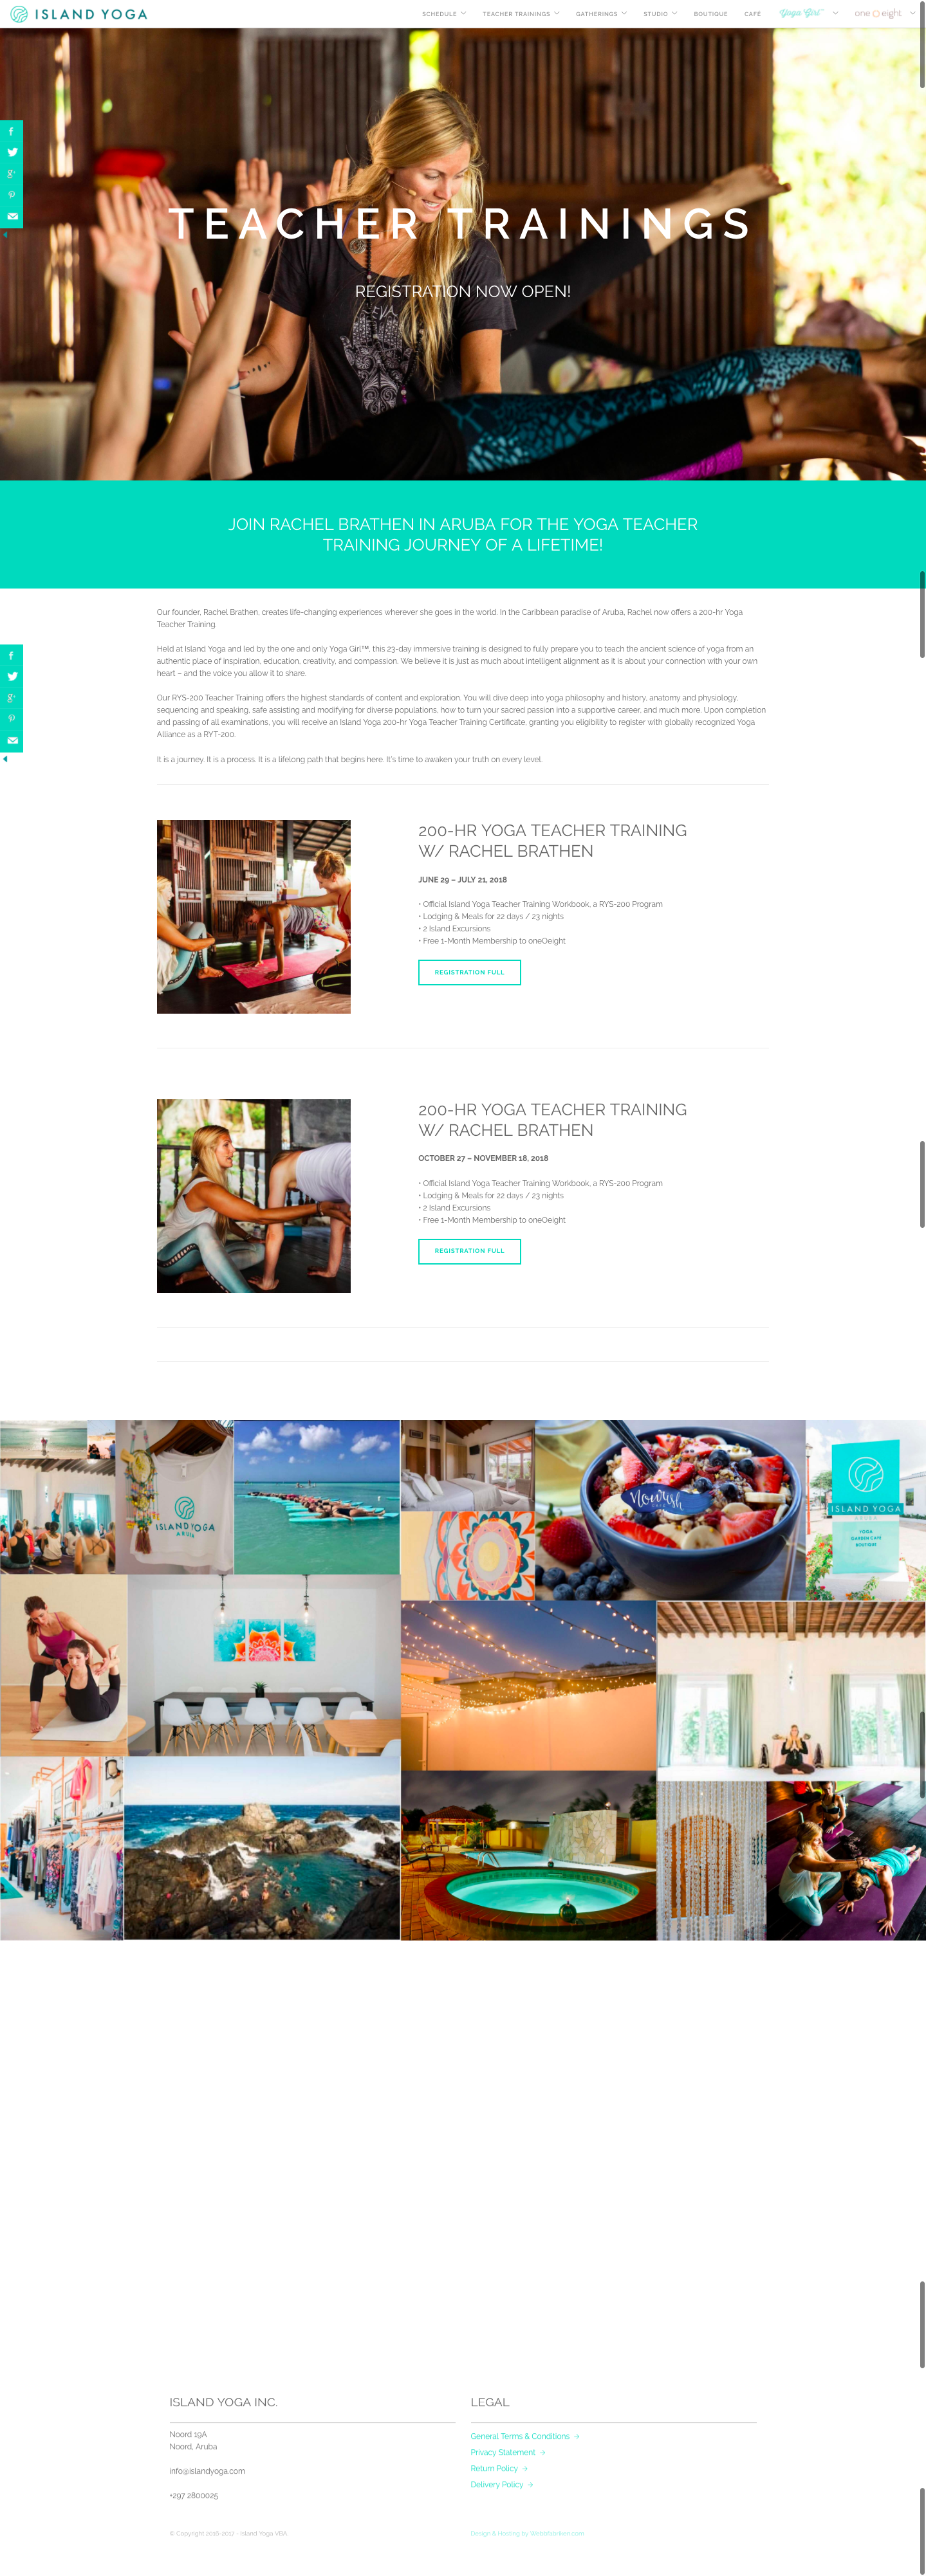 Teacher Training Homepage - Our founder, Rachel Brathen,creates life-changing experiences wherever she goes in the world. In the Caribbean paradise of Aruba, Rachel now offers a 200-hr Yoga Teacher Training.Held at Island Yoga and led by the one and only Yoga Girl™, this 23-day immersive training is designed to fully prepare you to teach the ancient science of yoga from an authentic place of inspiration, education, creativity, and compassion. We believe it is just as much about intelligent alignment as it is about your connection with your own heart – and the voice you allow it to share.Our RYS-200 Teacher Training offers the highest standards of content and exploration. You will dive deep into yoga philosophy and history, anatomy and physiology, sequencing and speaking, safe assisting and modifying for diverse populations, how to turn your sacred passion into a supportive career, and much more. Upon completion and passing of all examinations, you will receive an Island Yoga 200-hr Yoga Teacher Training Certificate, granting you eligibility to register with globally recognized Yoga Alliance as a RYT-200.It is a journey. It is a process. It is a lifelong path that begins here. It's time to awaken your truth on every level.View page in browser →